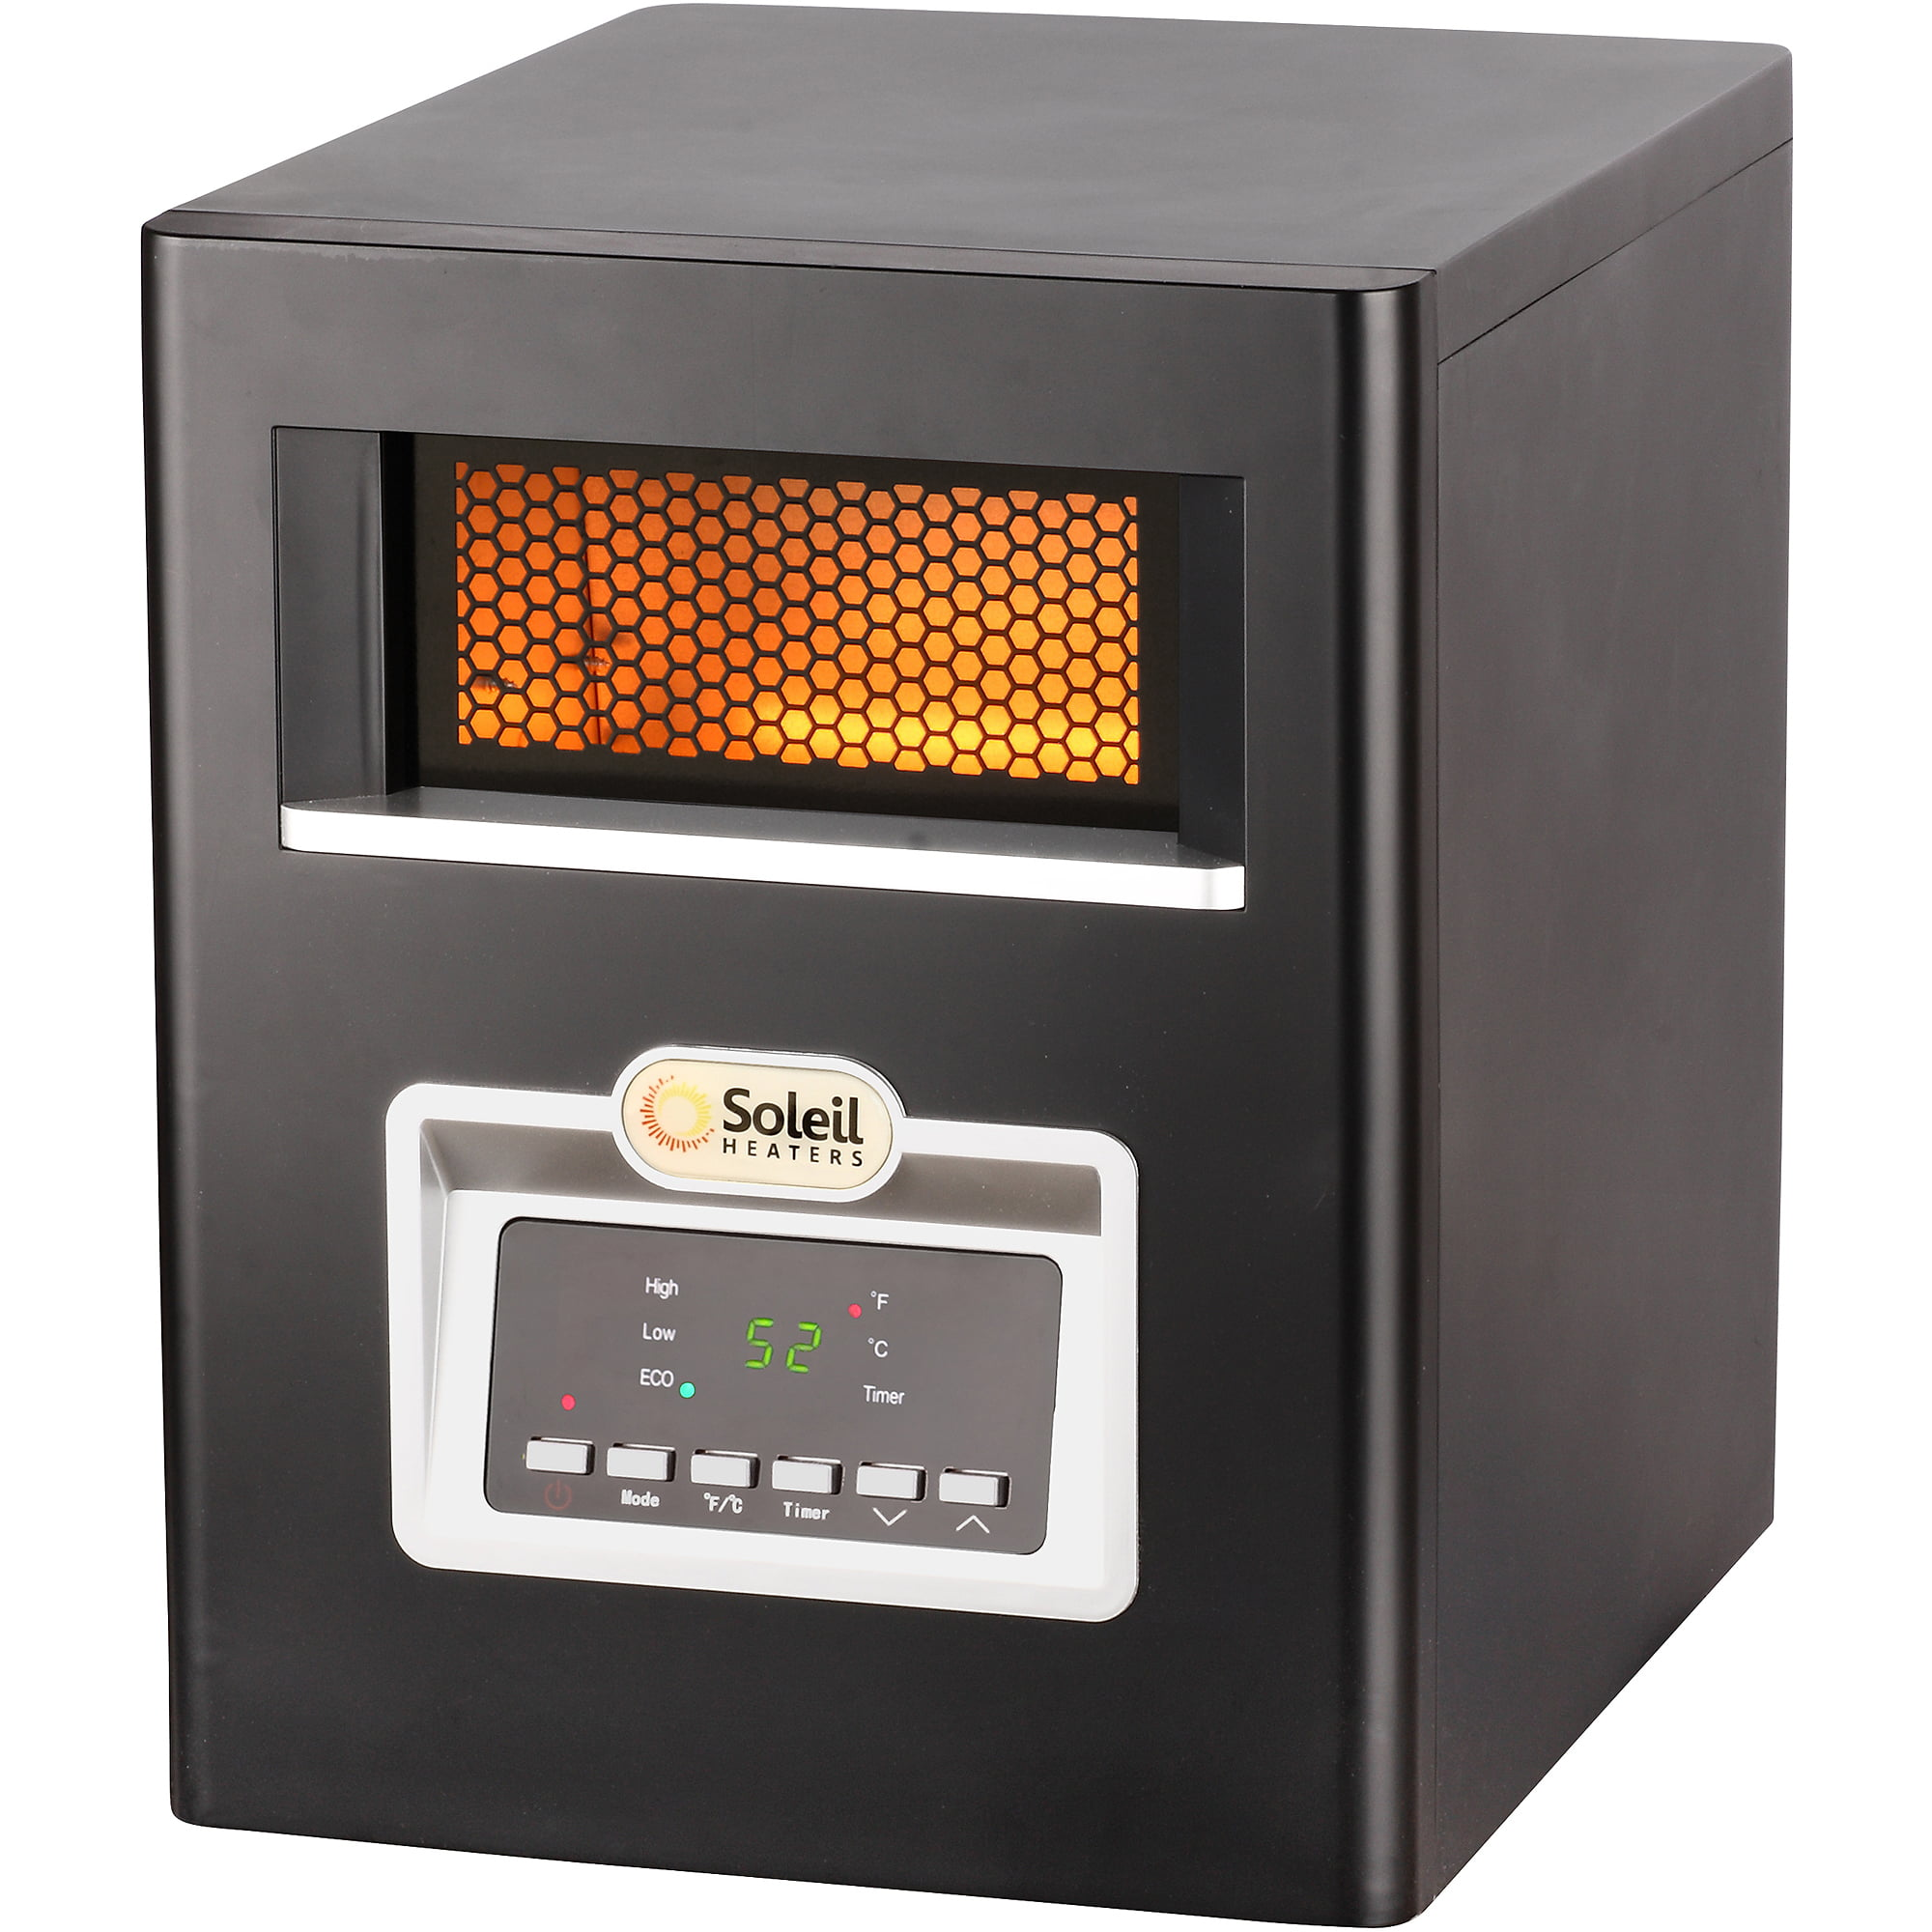 Soleil Electric Infrared Cabinet Space Heater, 1500W, PH-91F - Walmart.com